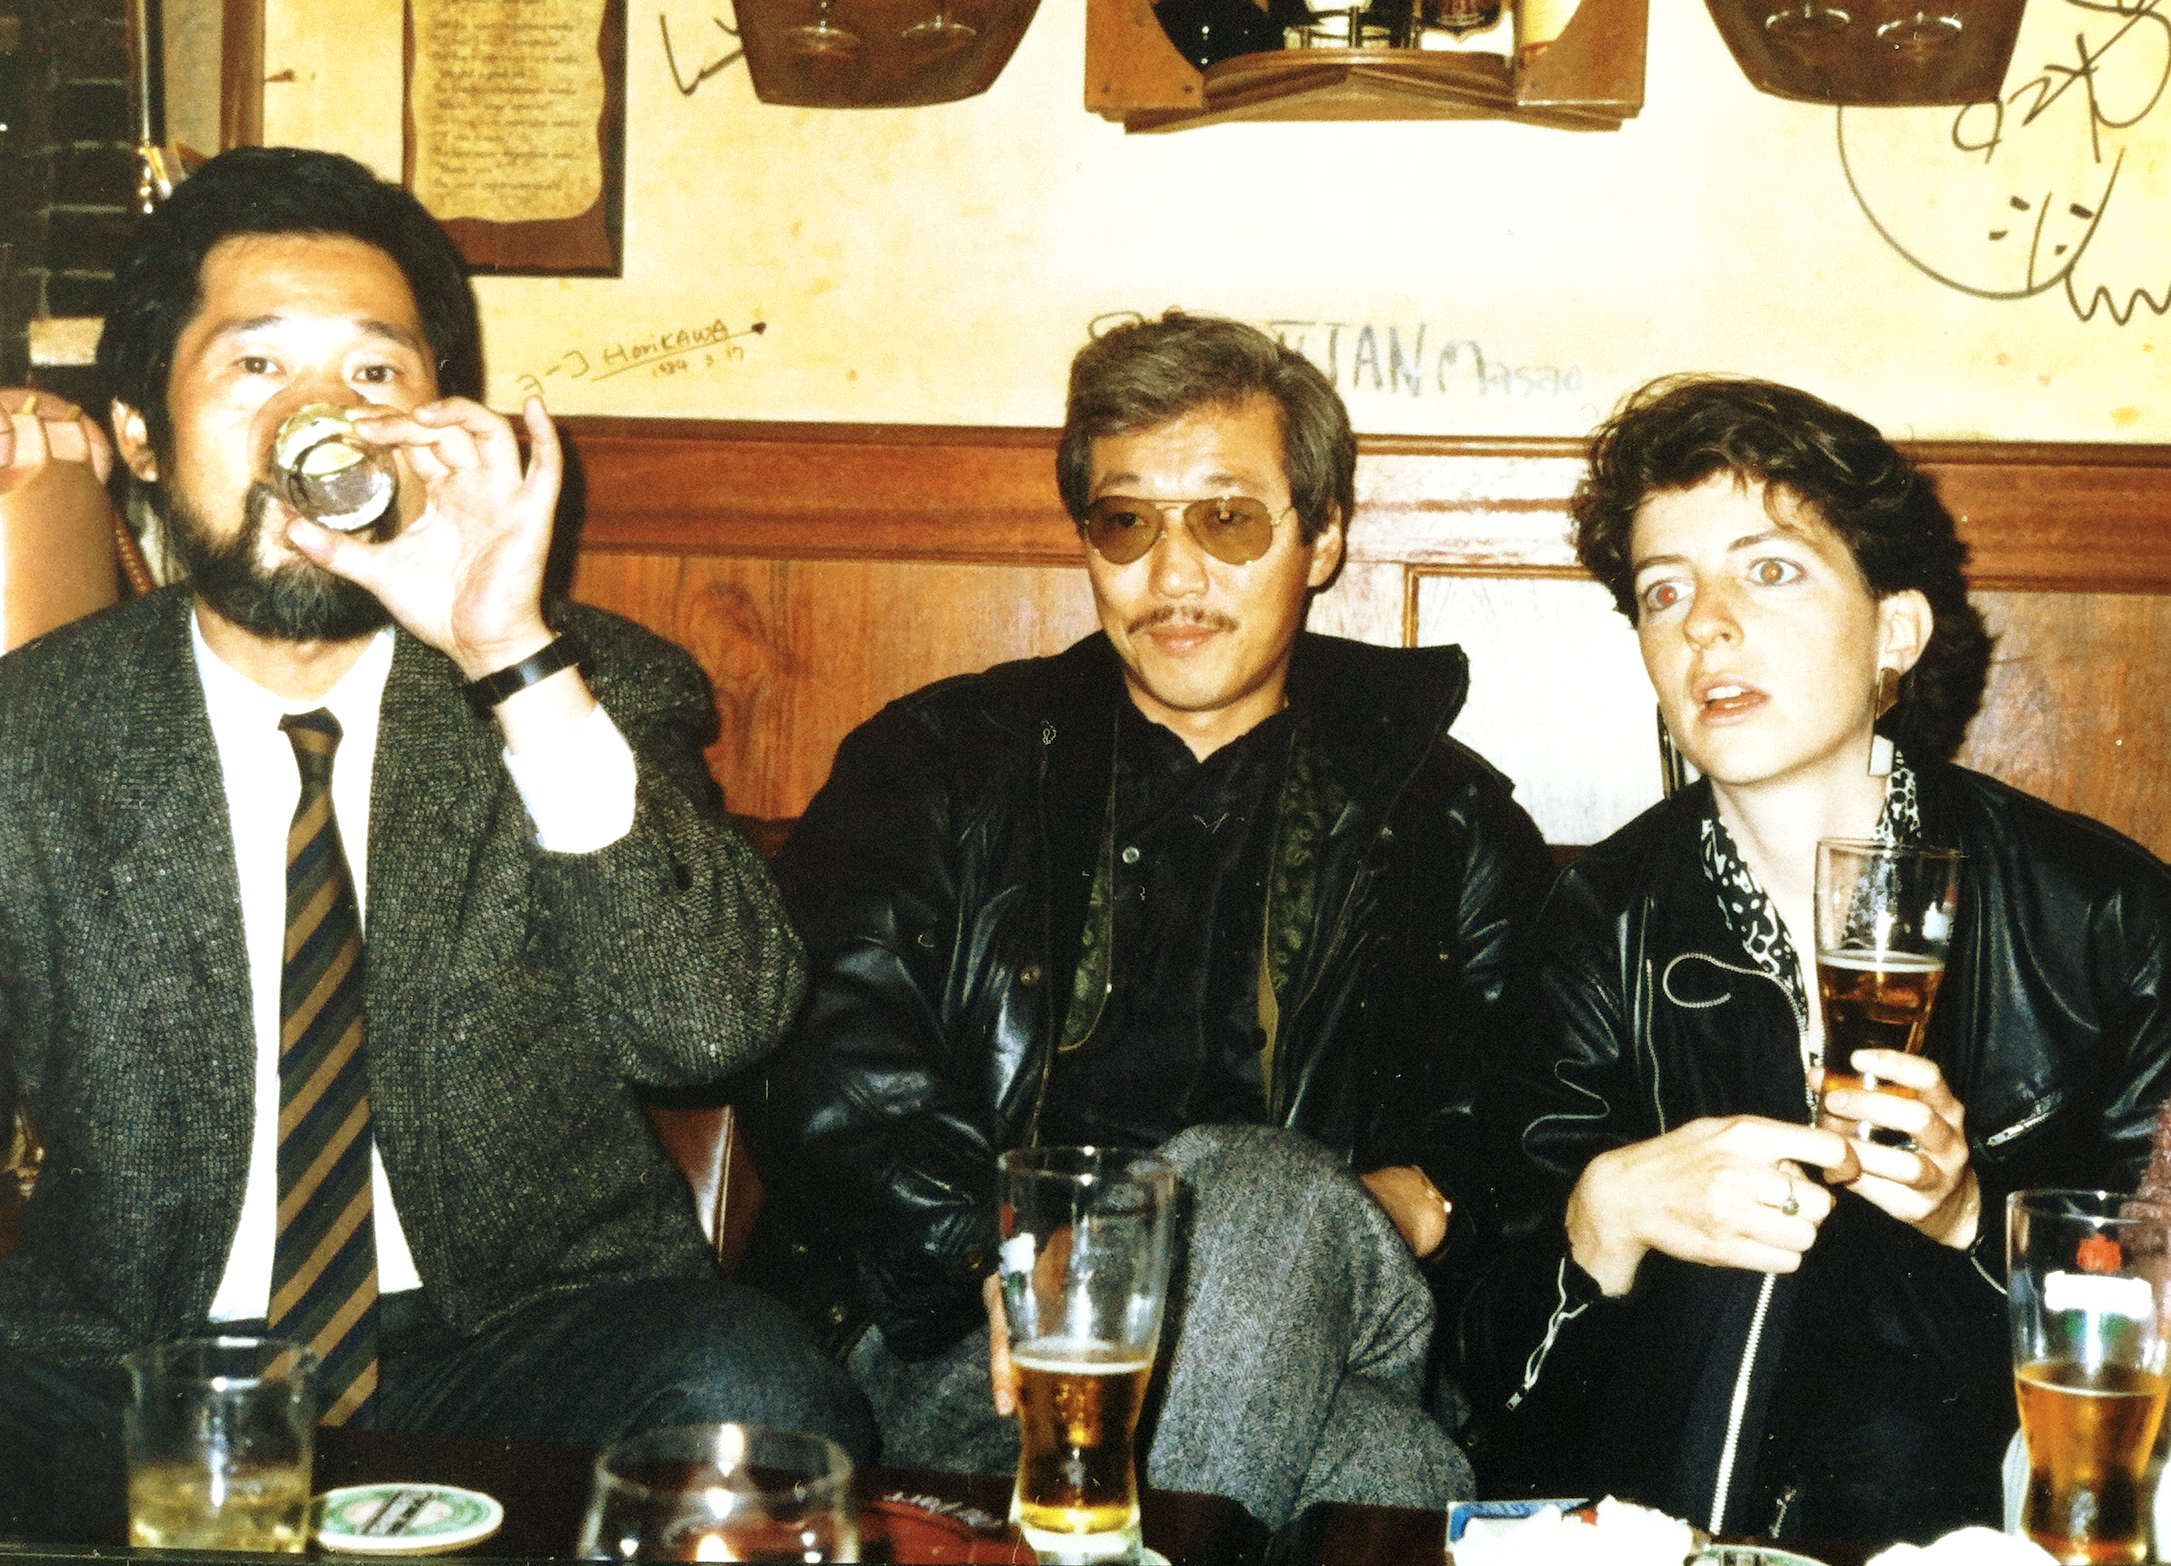 A bewildered looking me with Watanabe-san and Suzuki-san in the early 1980s.